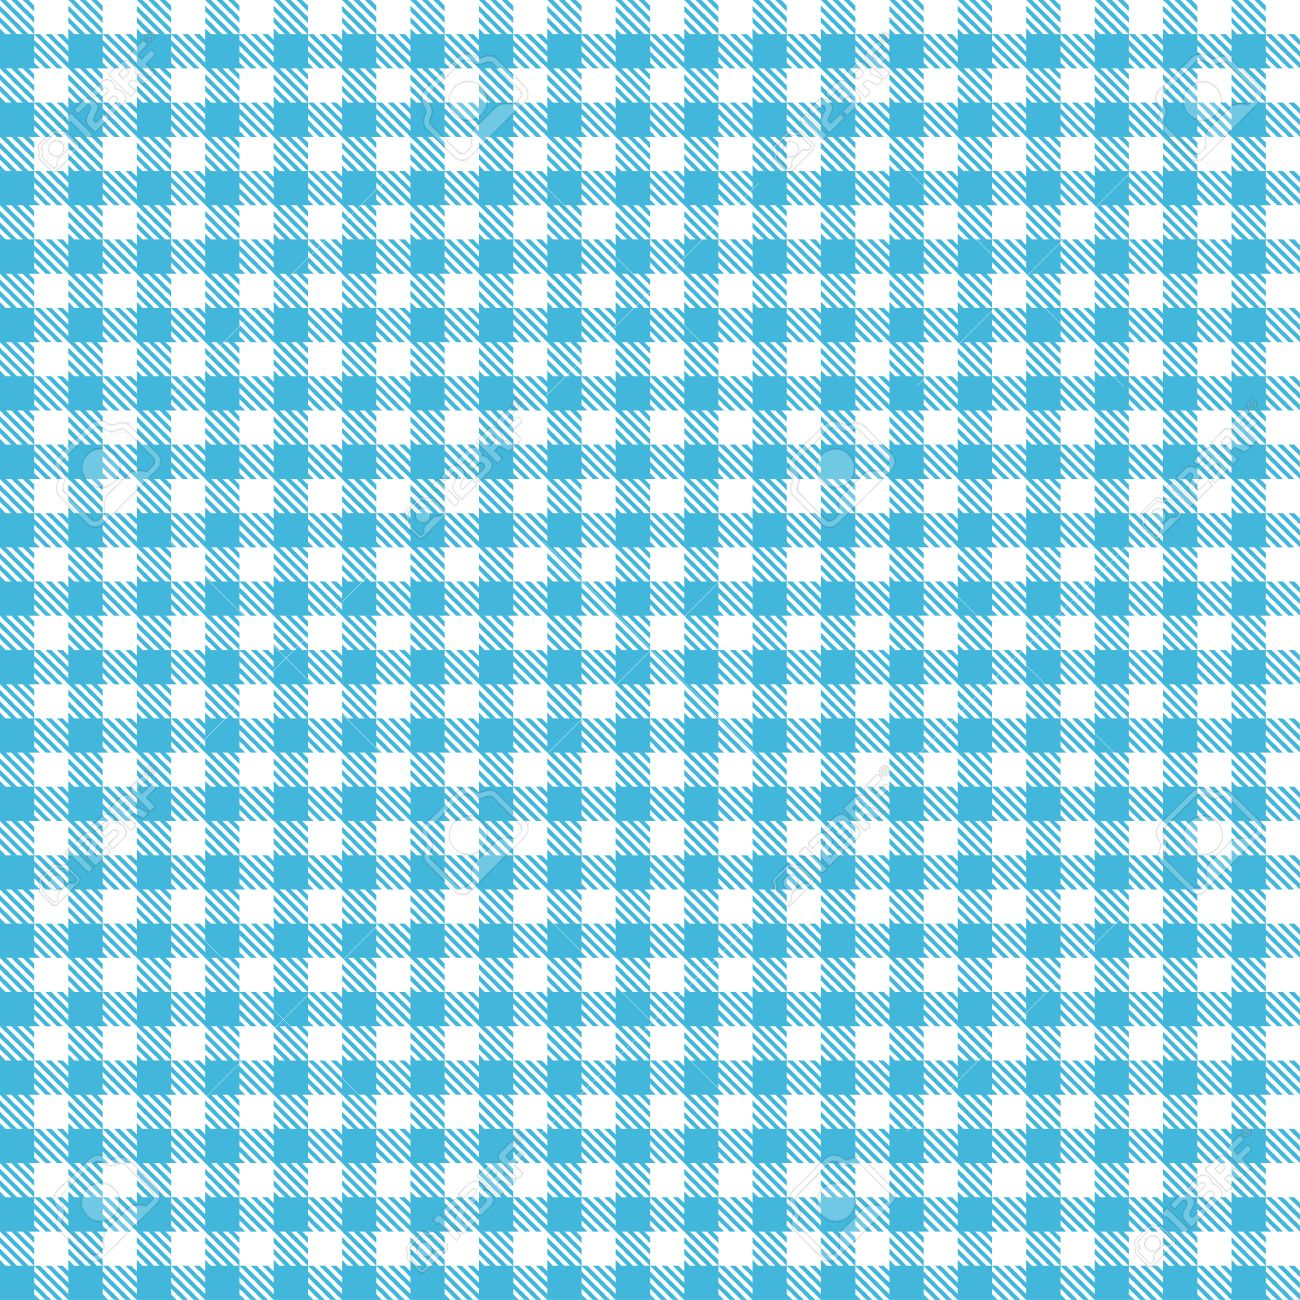 Blue tablecloth background - Endless Blue Checkered Table Cloth Pattern For Background Design Stock Vector 35741922